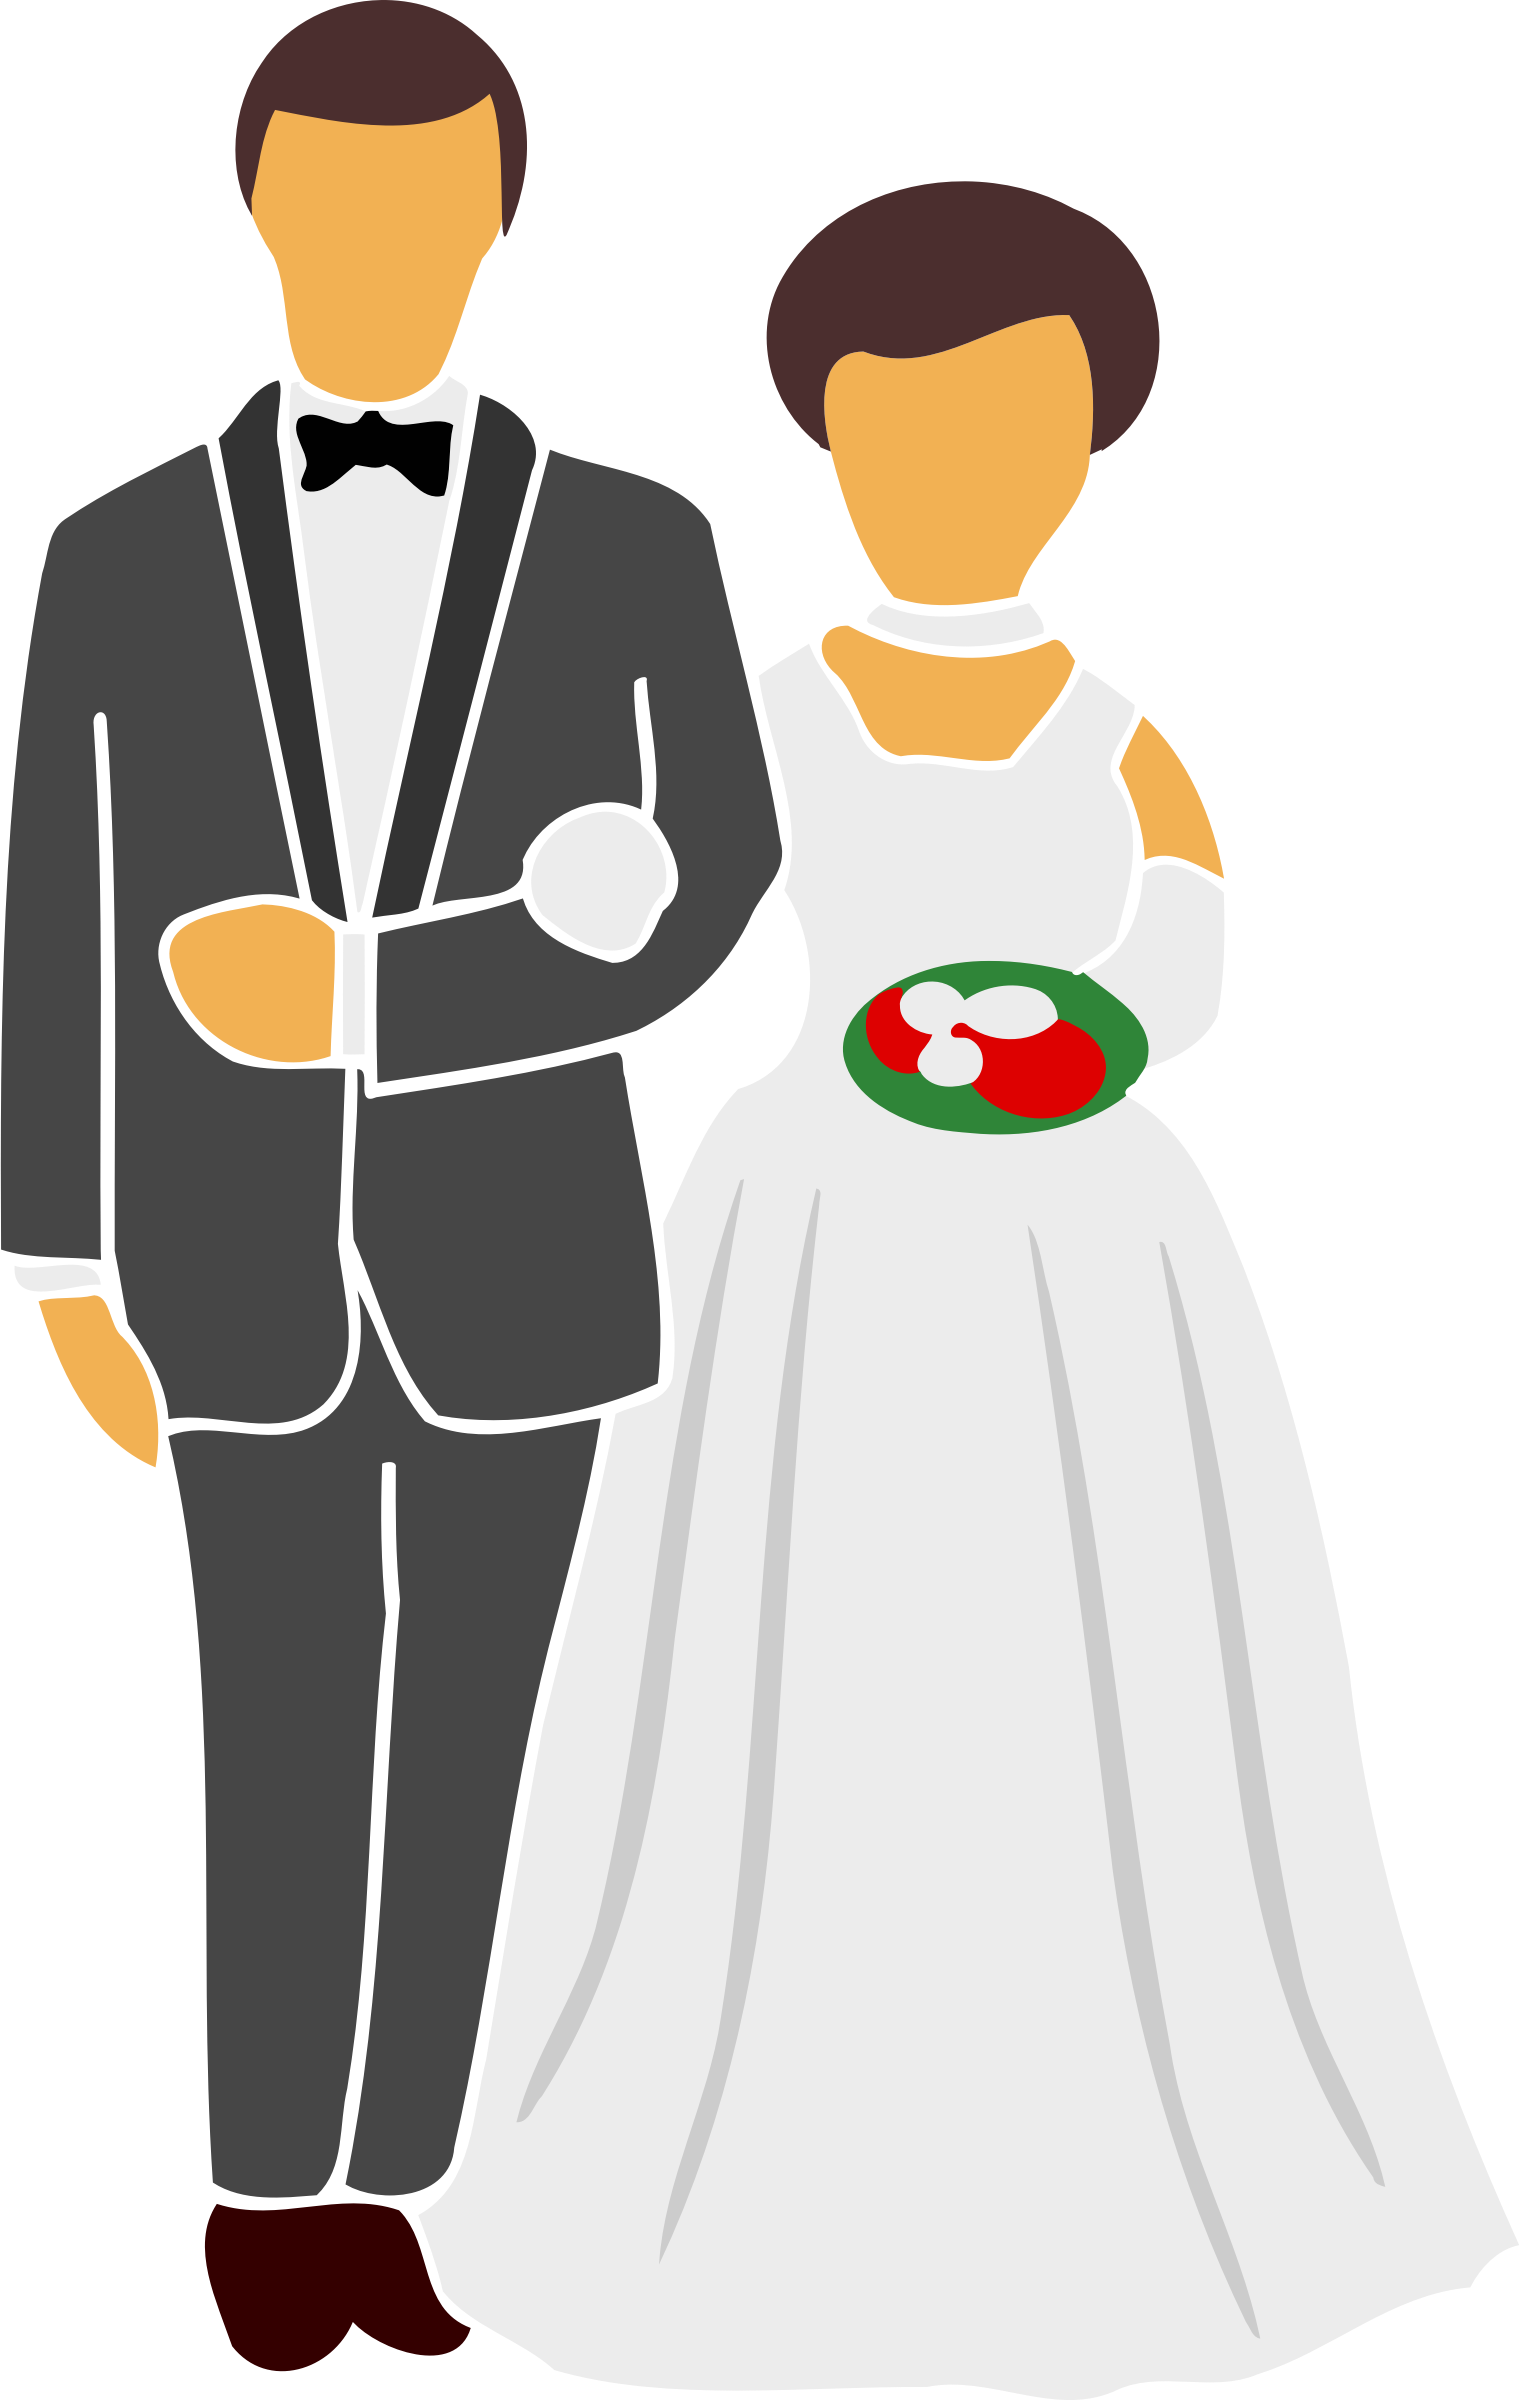 Bride and groom by Firkin